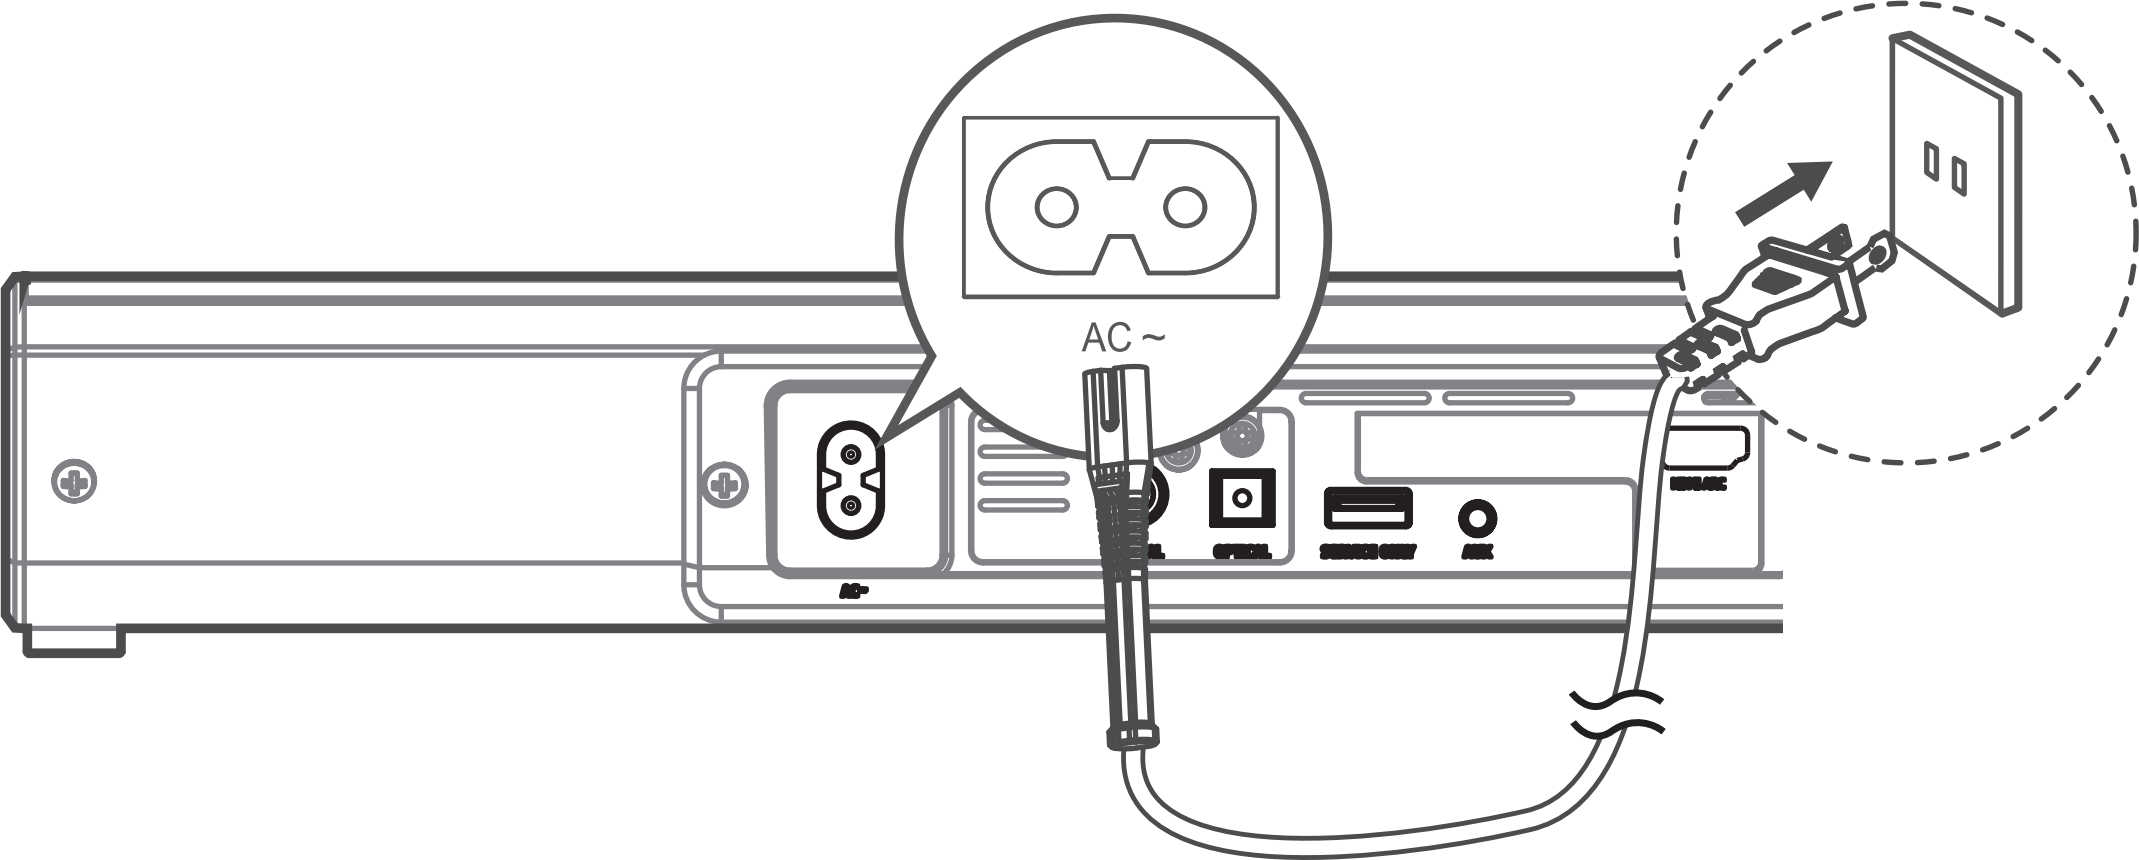 Diagram of connecting power cable to soundbar